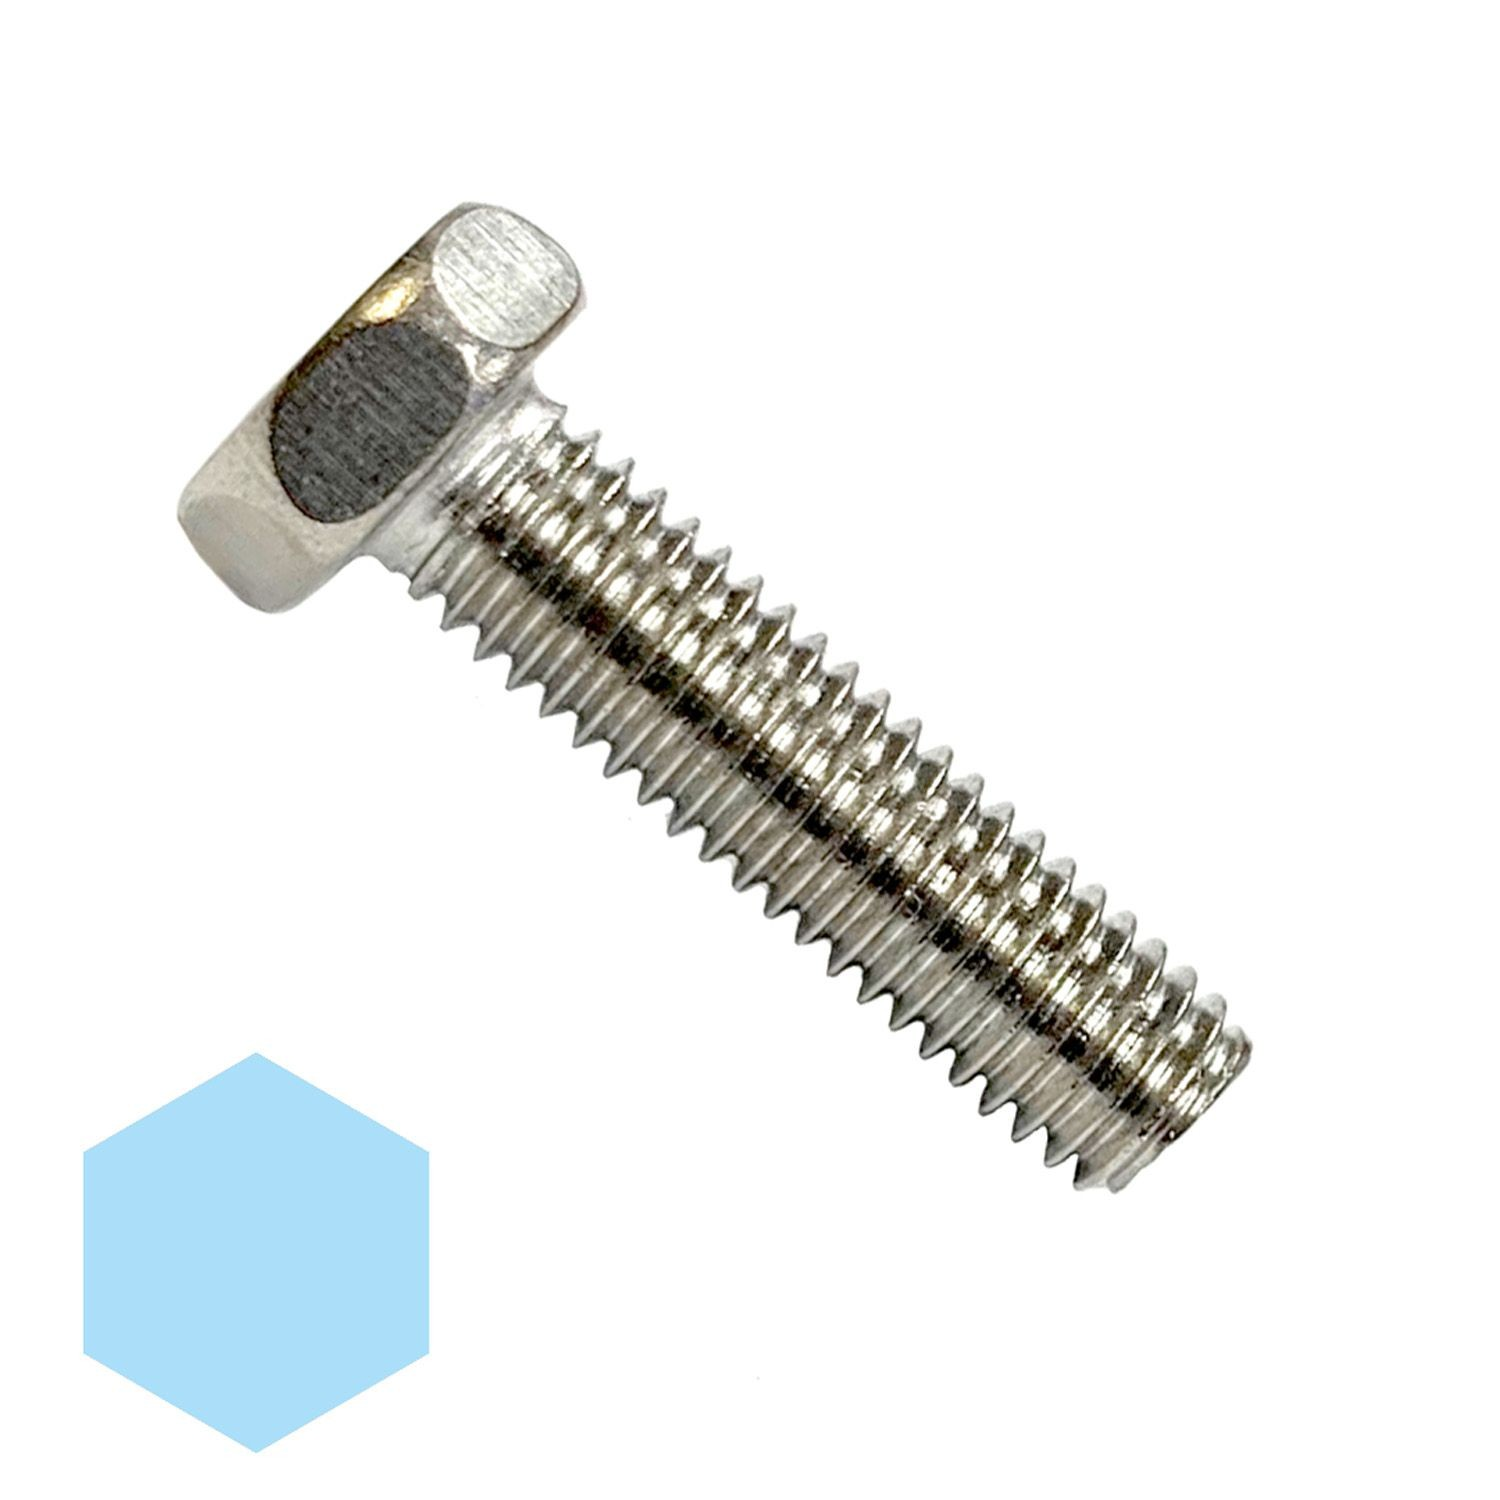 "#10-24 x 1/2"" Stainless Steel Hex Head Machine Screw 18-8"